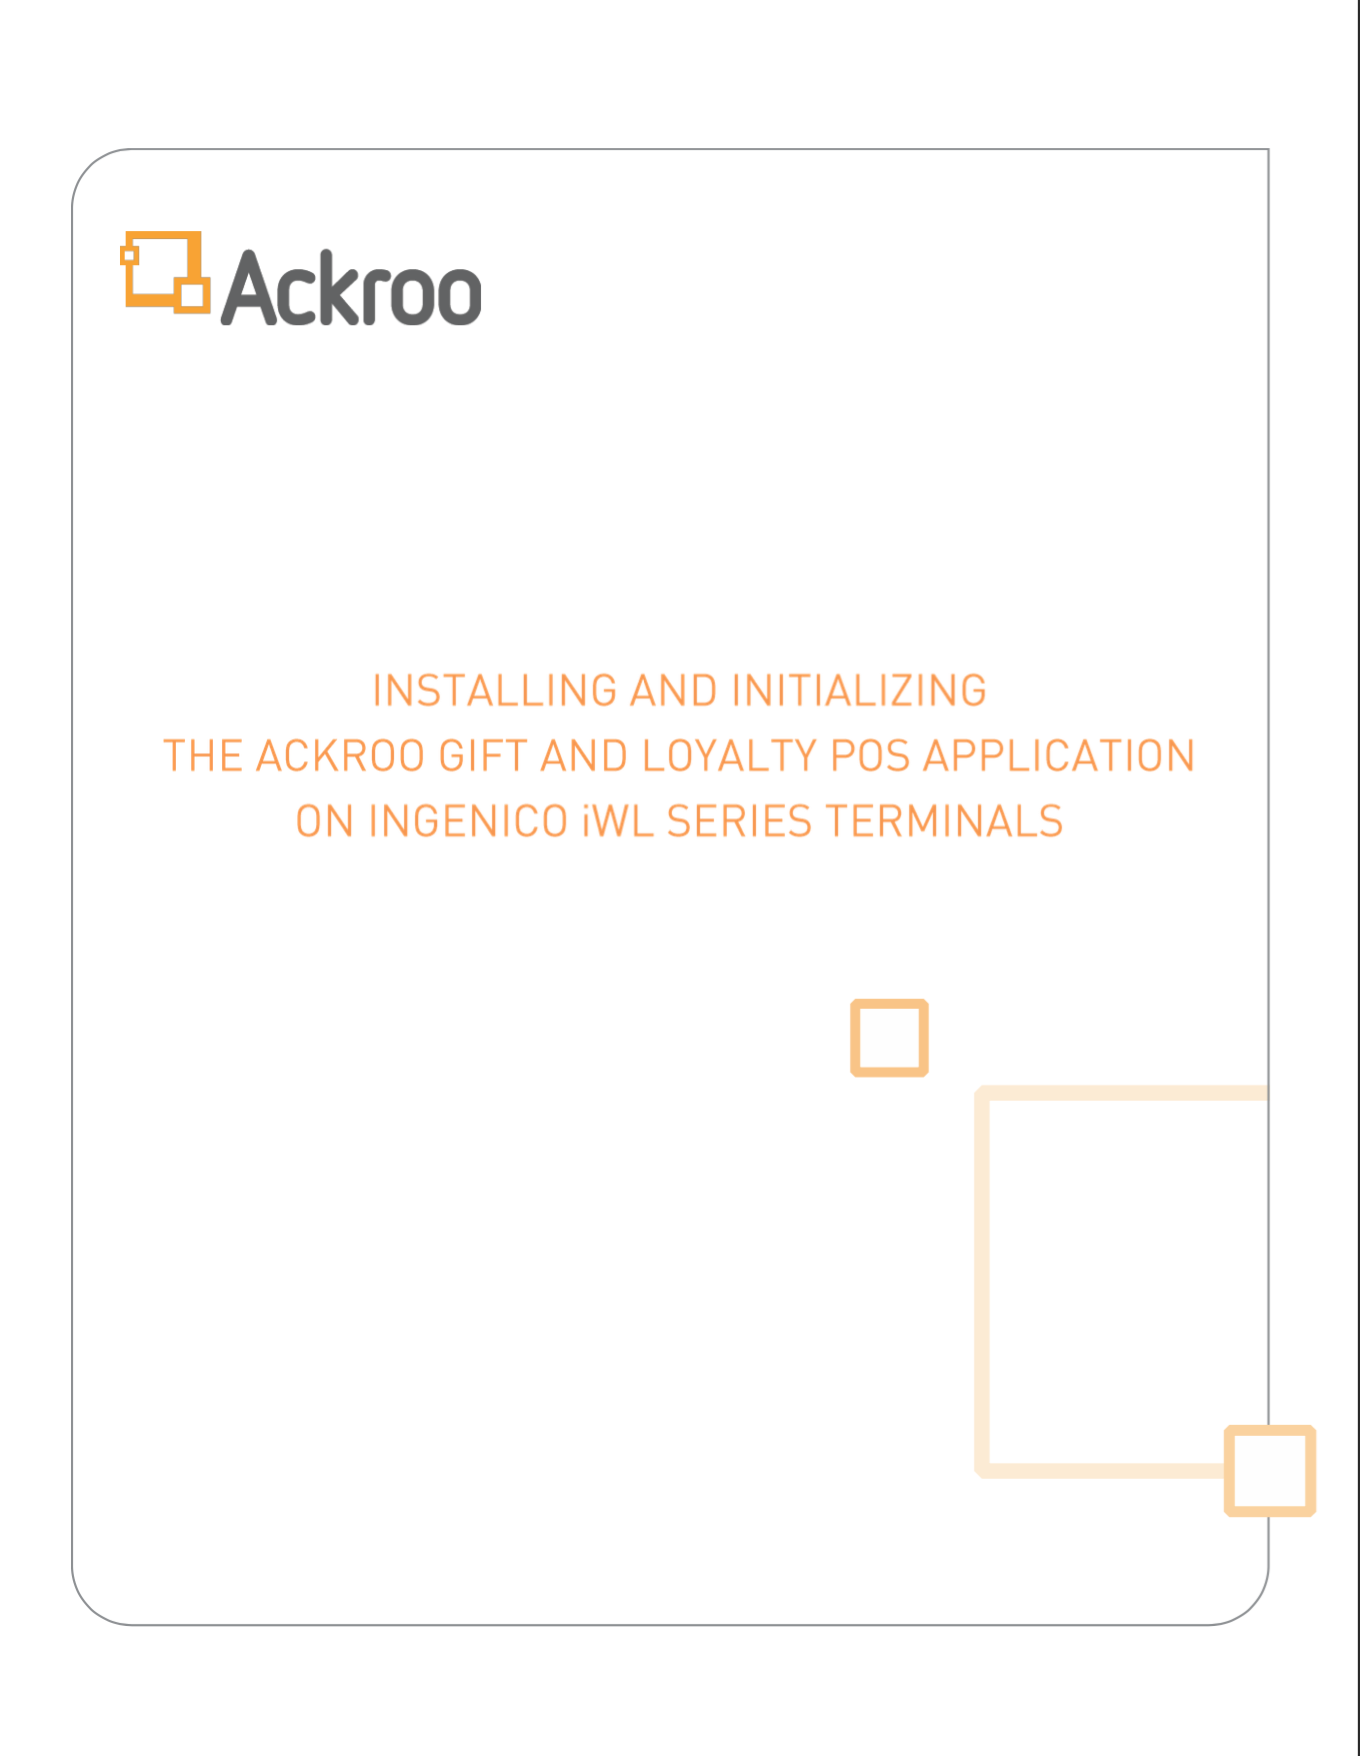 Ingenico_iWL_Ackapp_installation_guide_-_Page_1.png